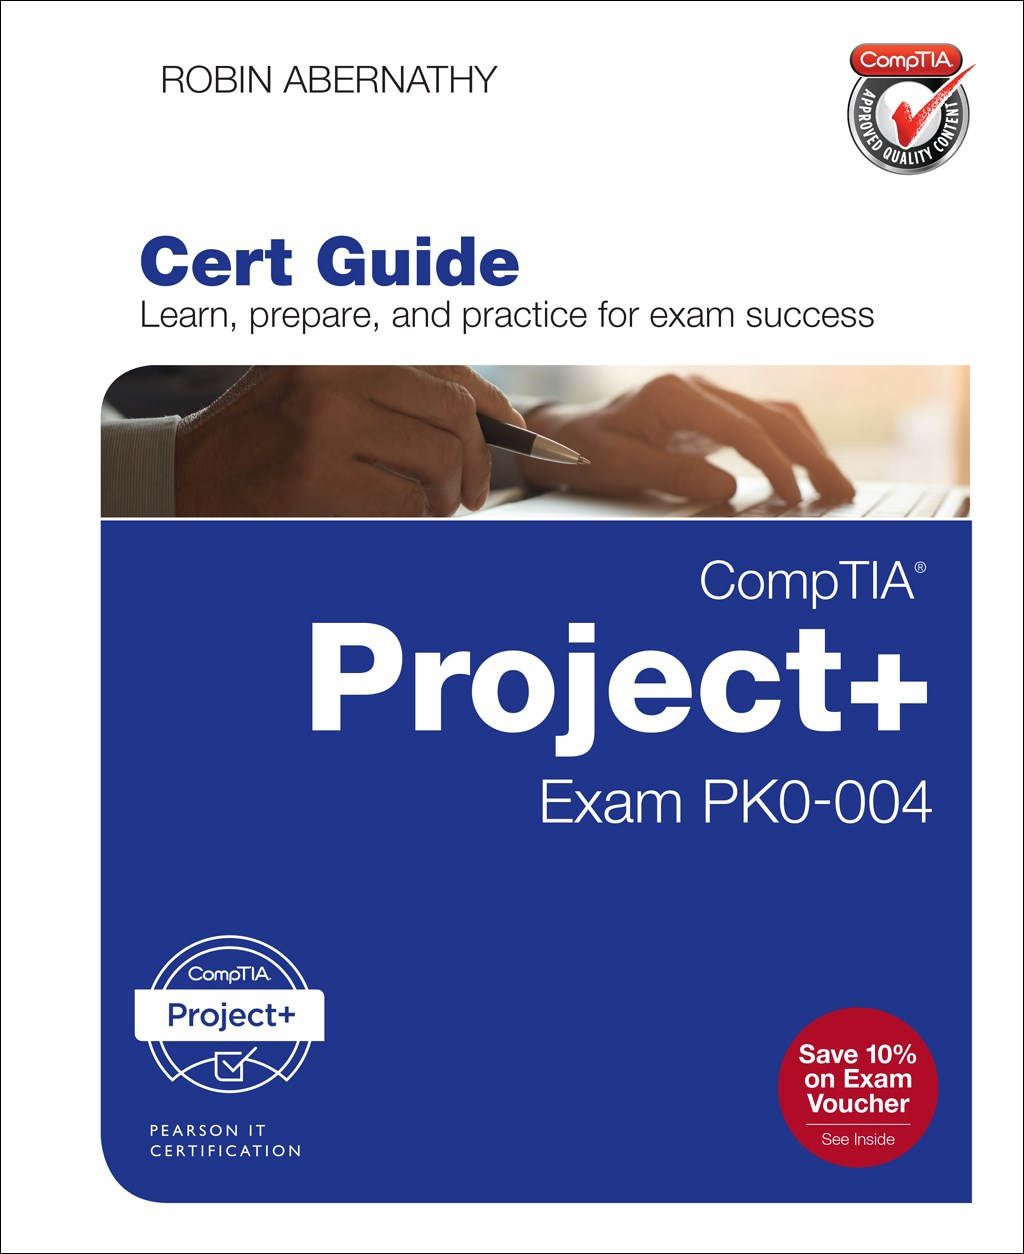 CompTIA Project+ Cert Guide: Exam PK0-004